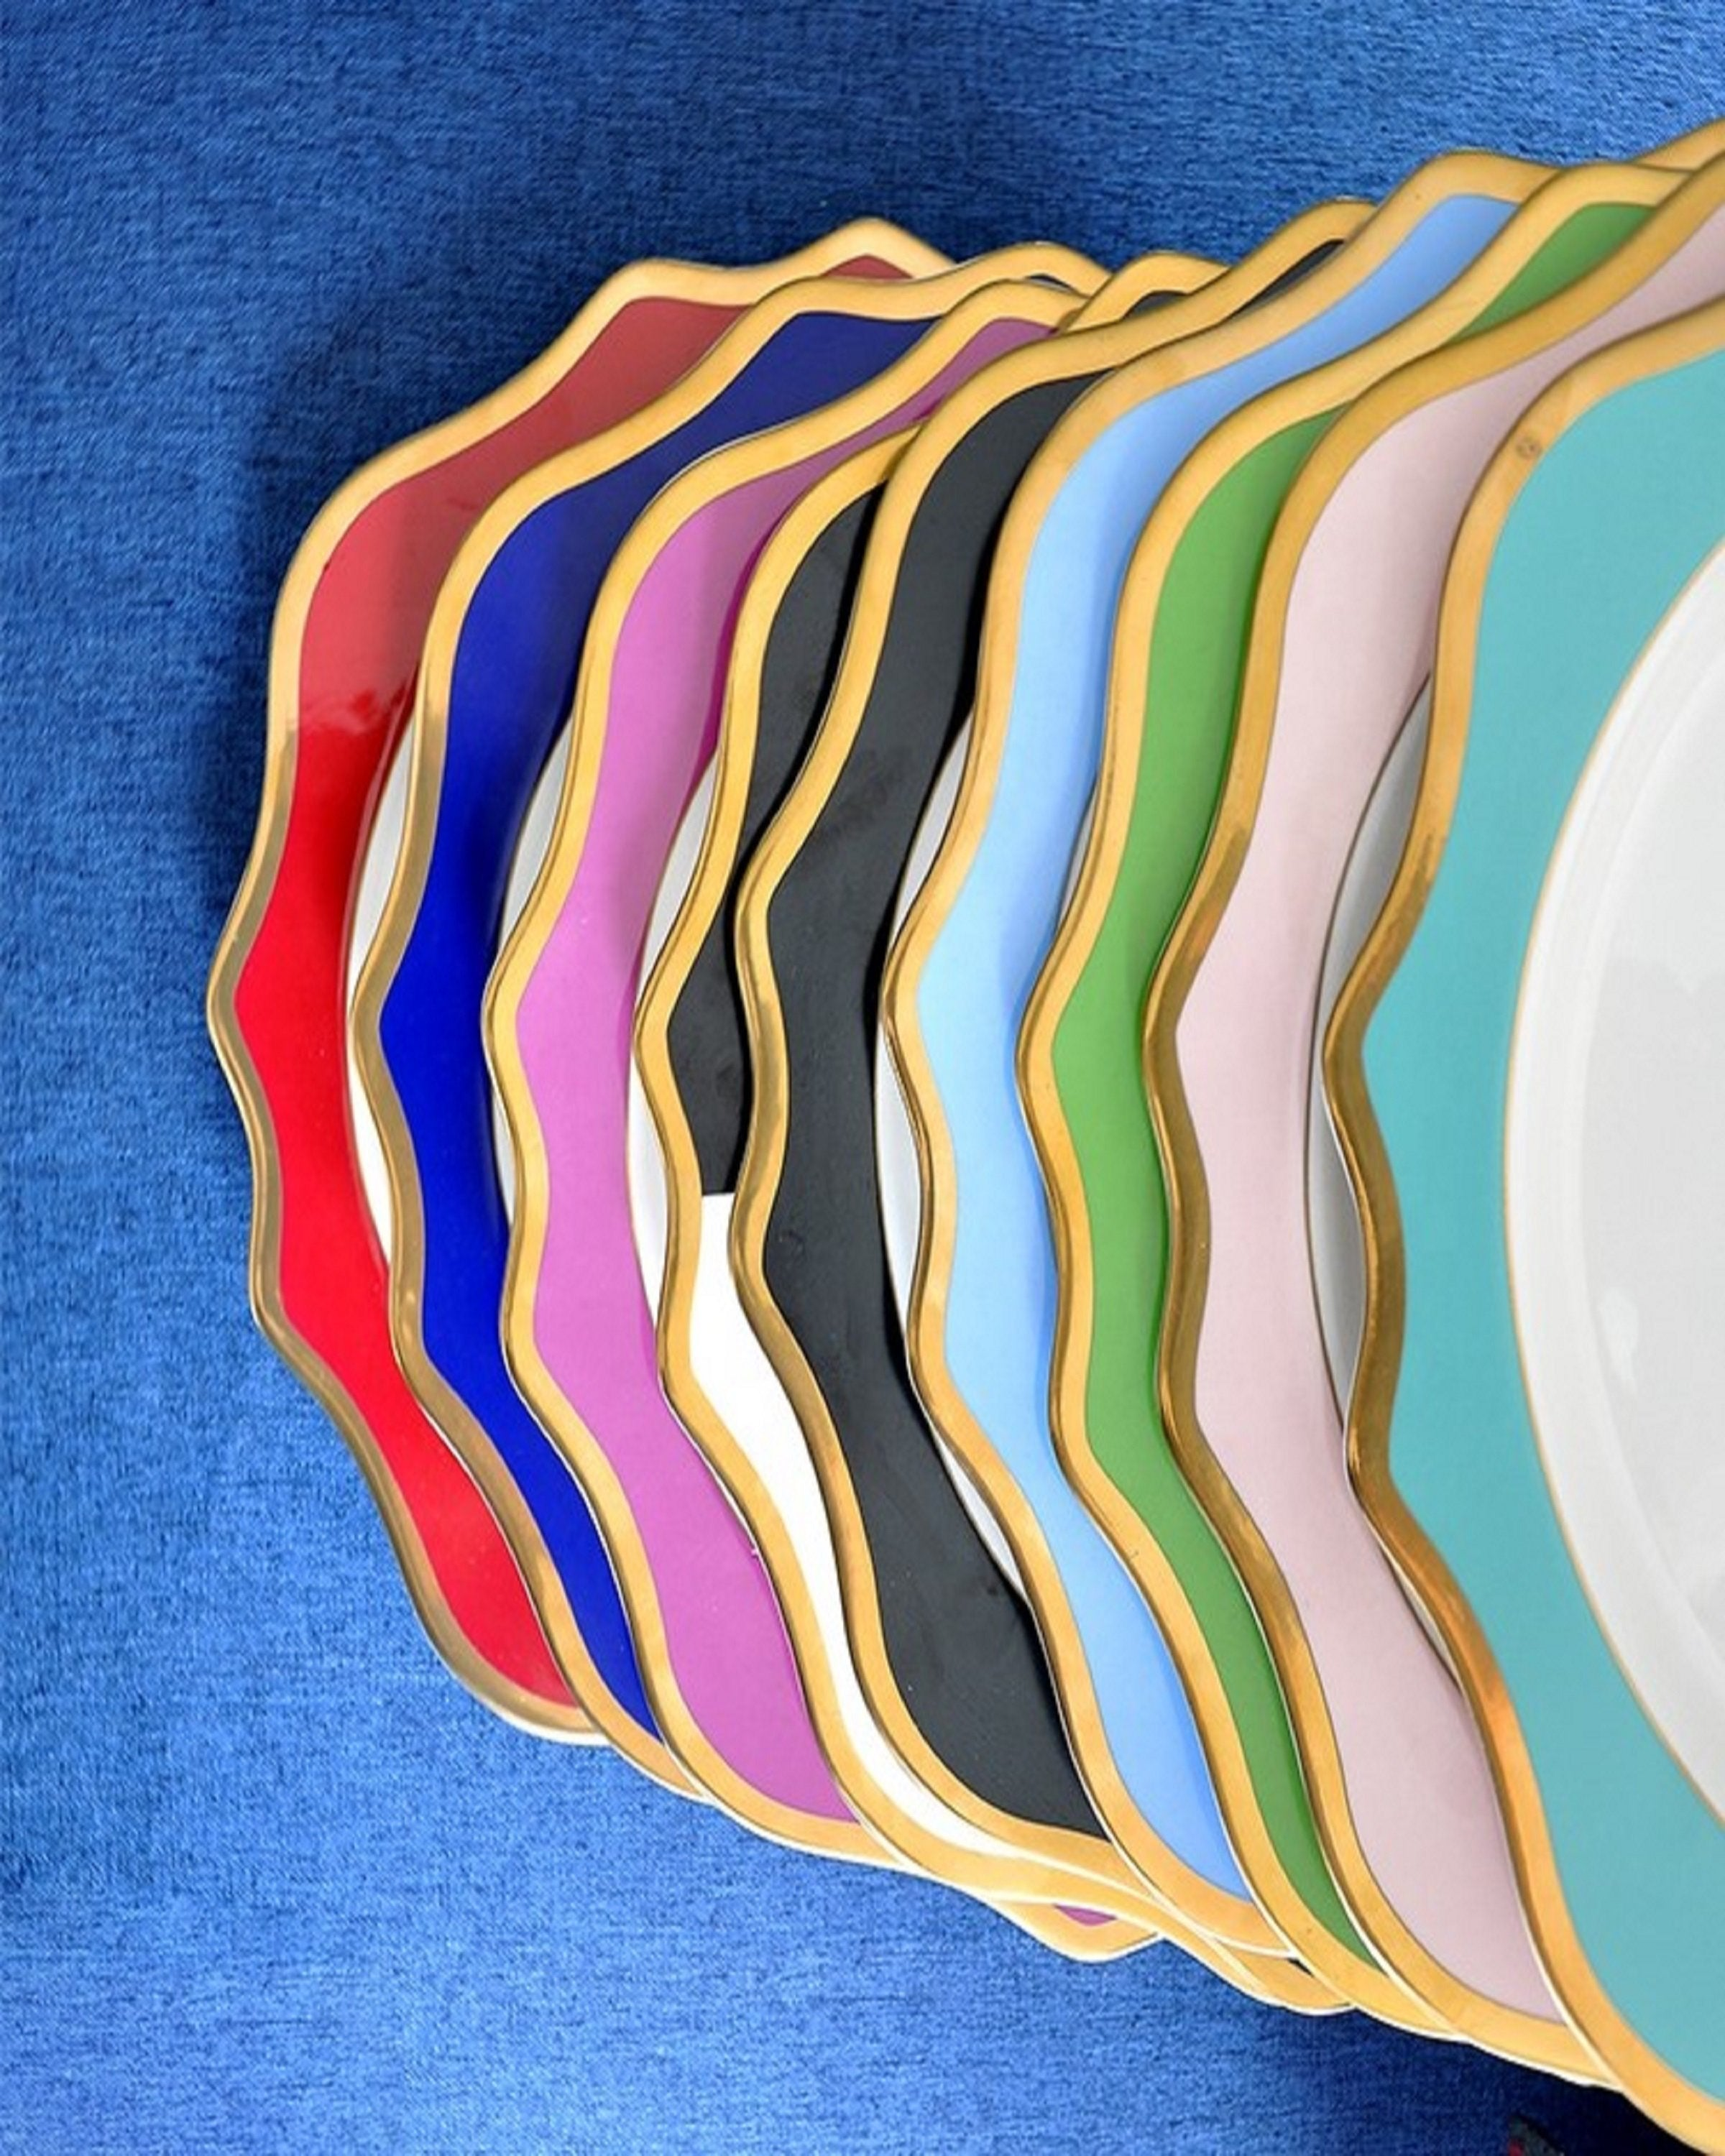 HALDEN COLOURFUL MODERN PLATES ANGIE KRIPALANI DESIGN - ANGIE HOMES- ANGIES INDIA